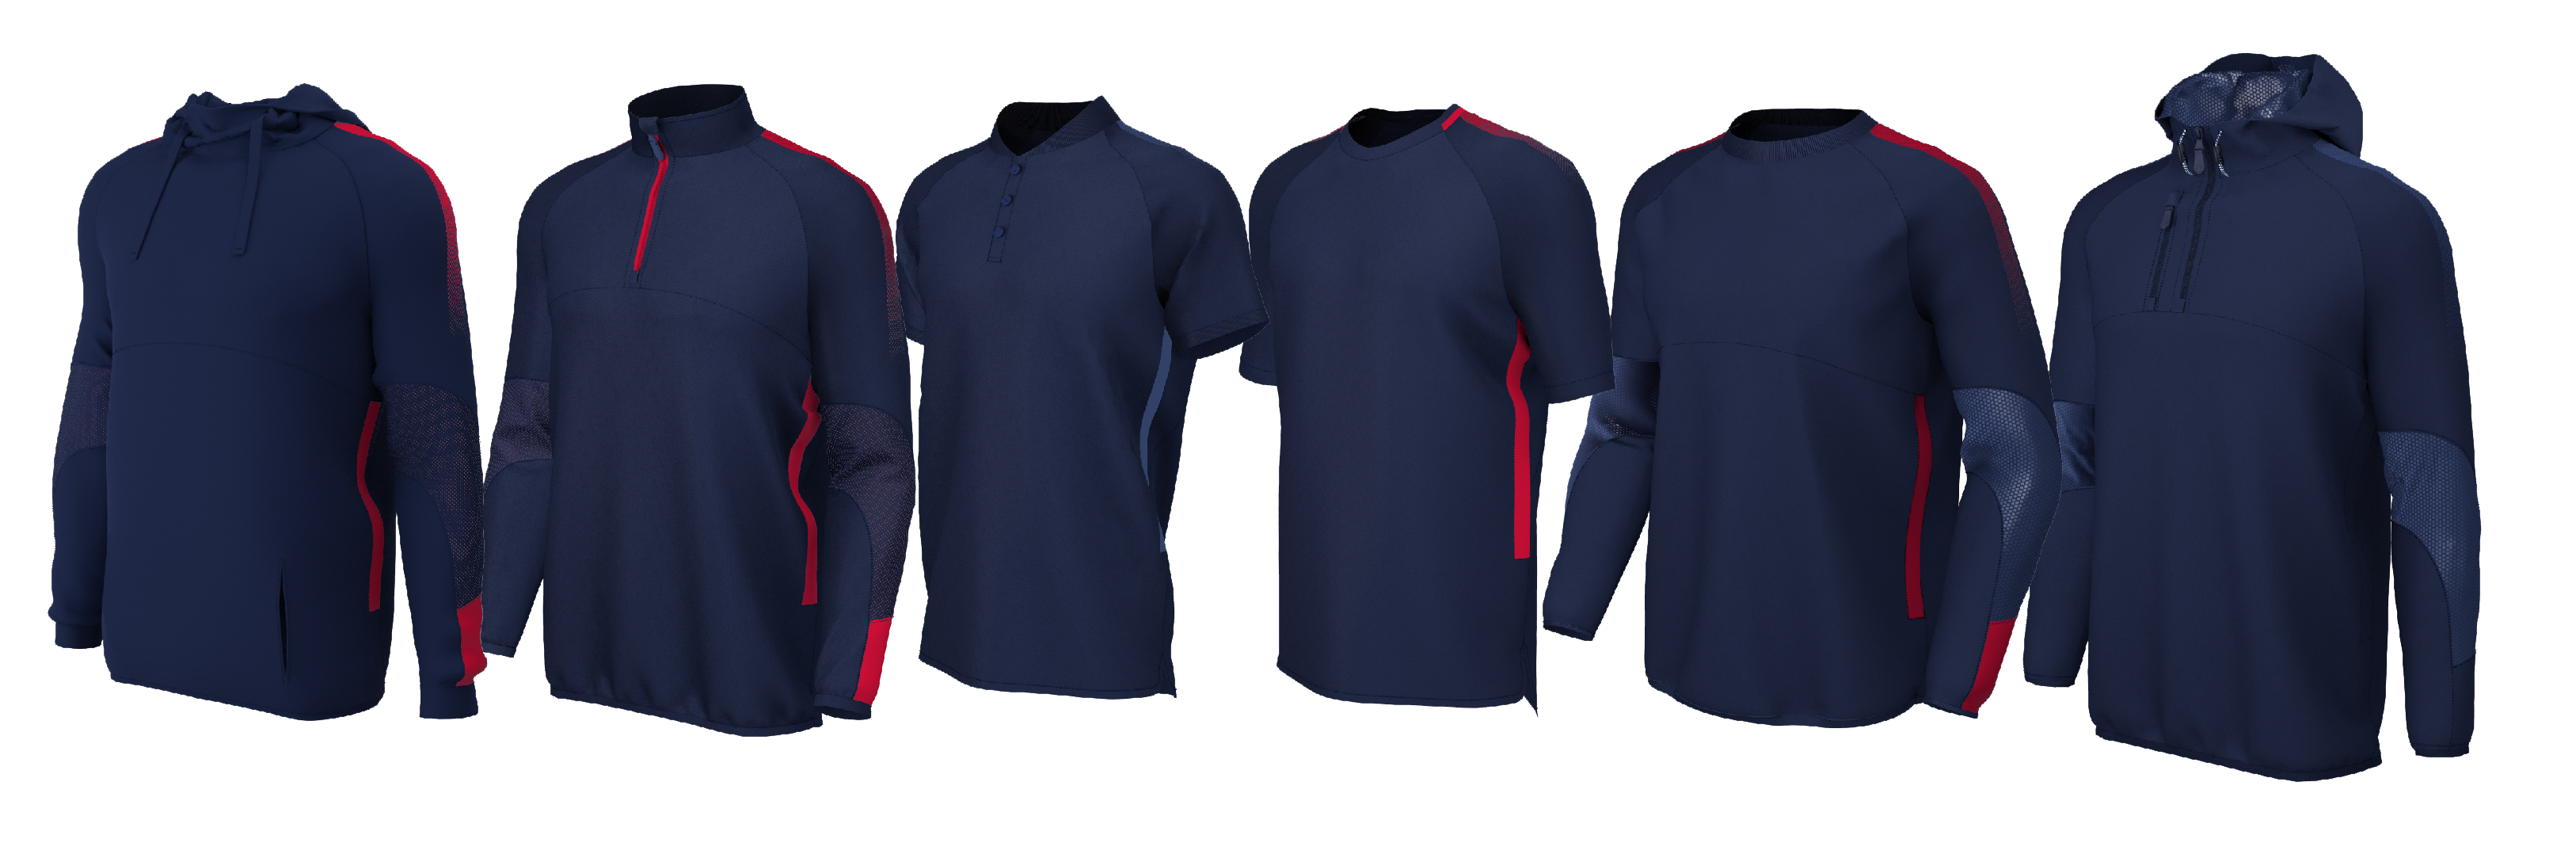 2019 NAVY RED - EDGE CADs TRANS FULL.png